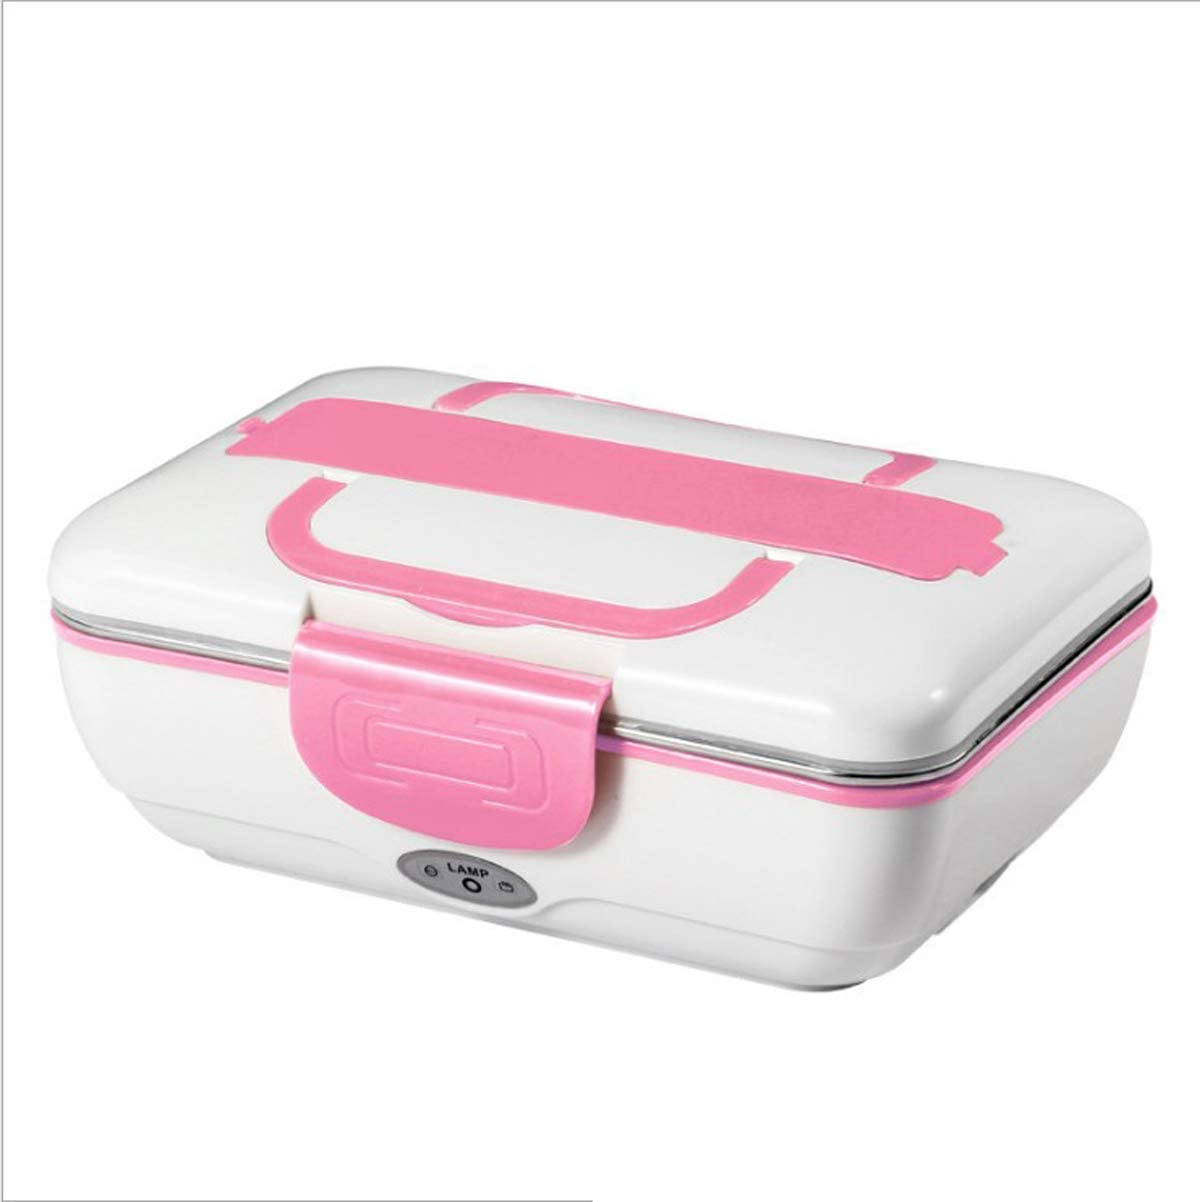 LEESTAR Electric Lunch Box Toursion Dual Use Car/Truck and Work Portable Removable Food Heater 304 Stainless Steel Container 110V&12V Spoon Fork and Chopsticks Included(Pink)